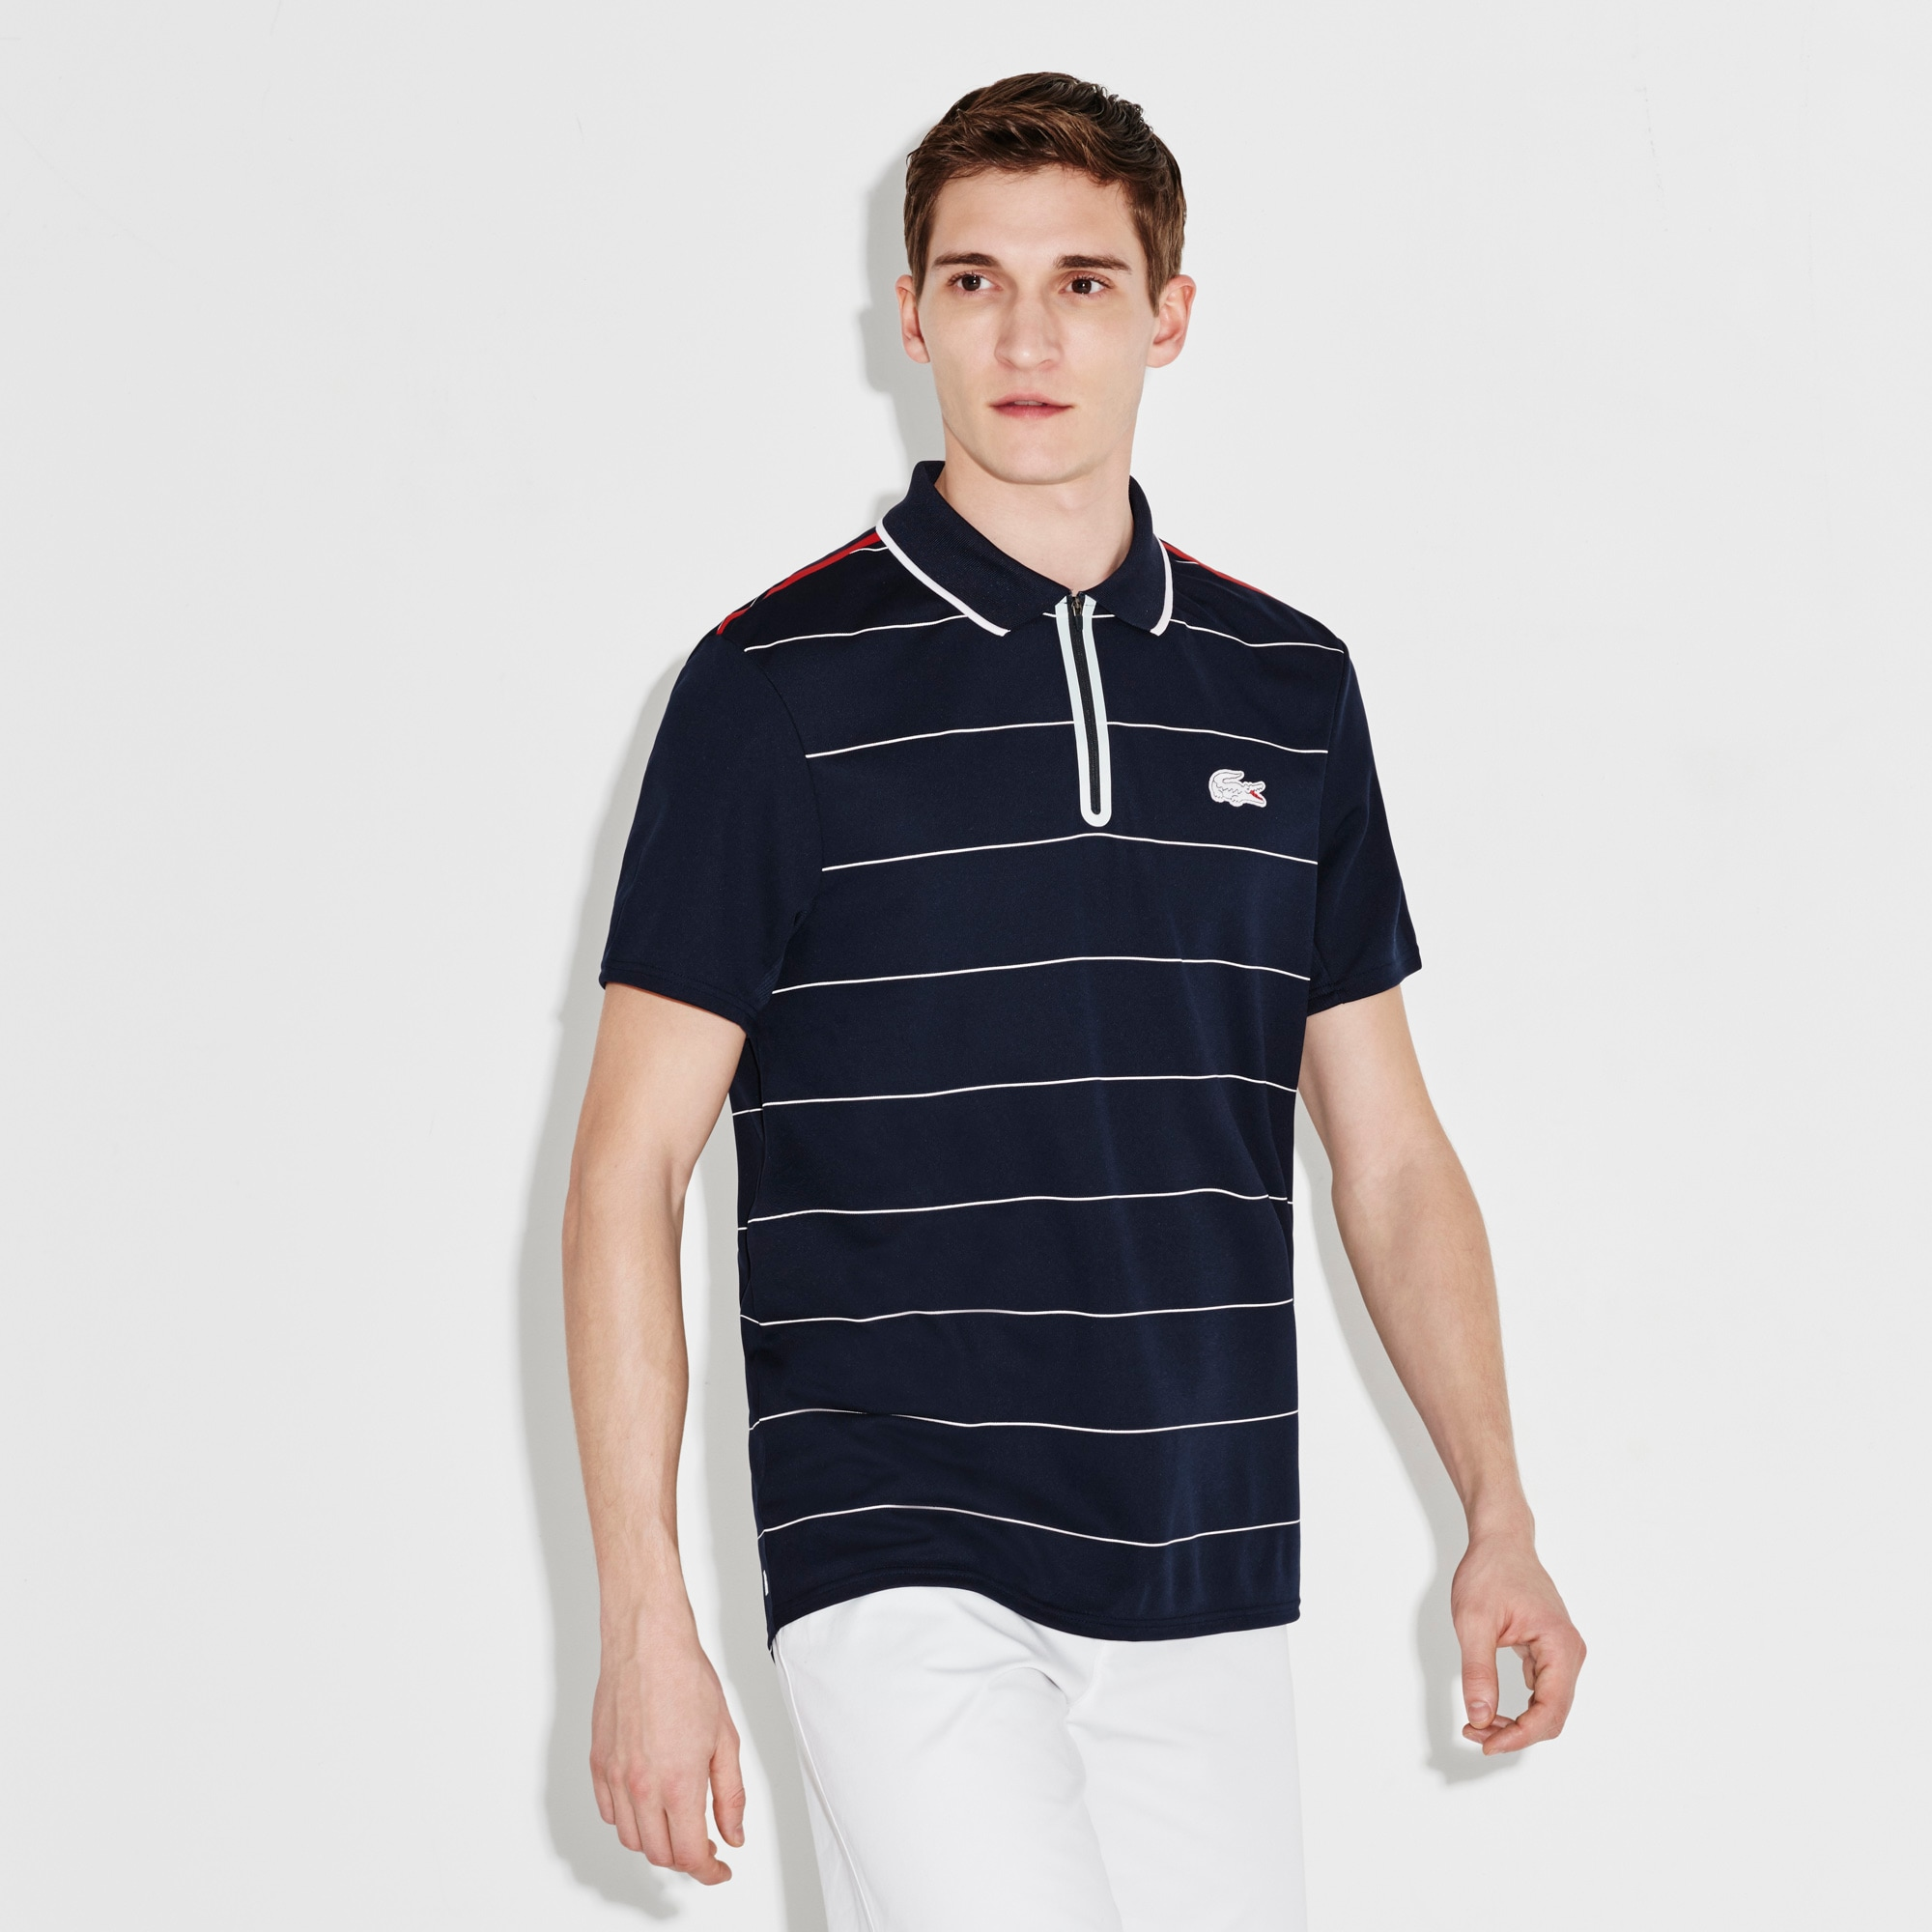 Men's SPORT French Open Striped Zip Neck Polo Shirt